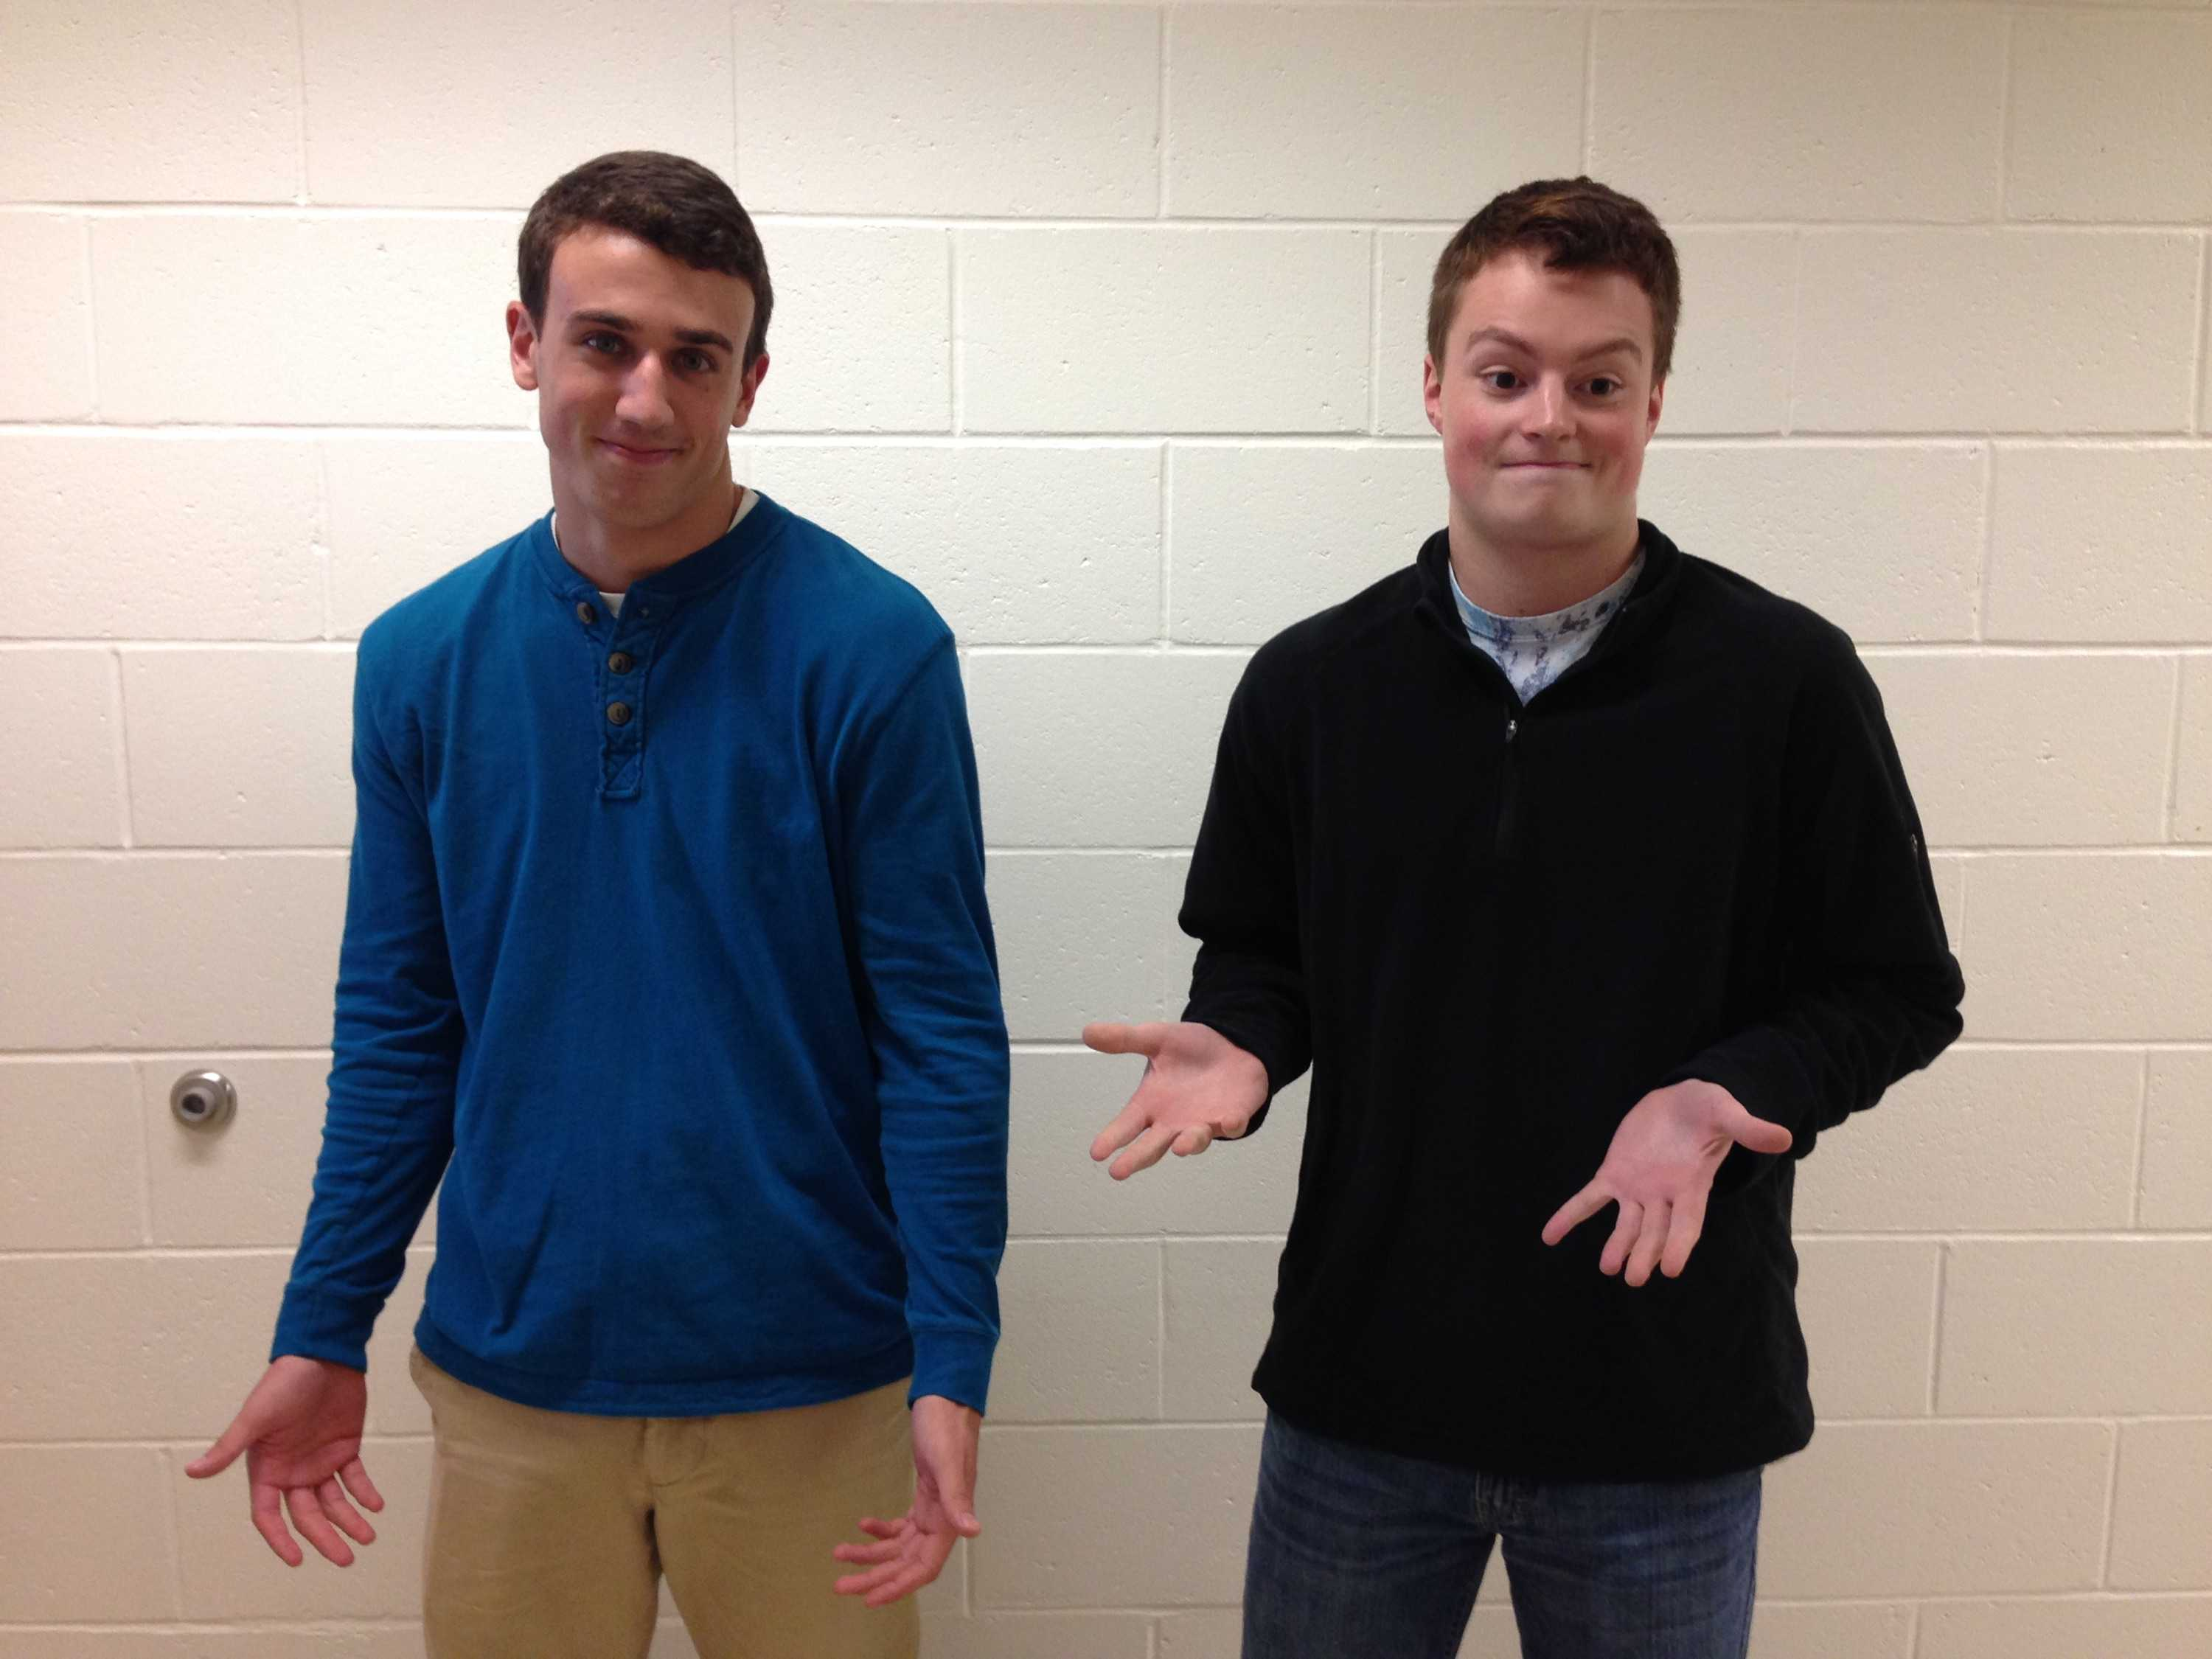 Seniors Jake Gore and Brendan Clark pose just minutes after hearing Principal Tom Mead's final decision regarding their positions on October 23.